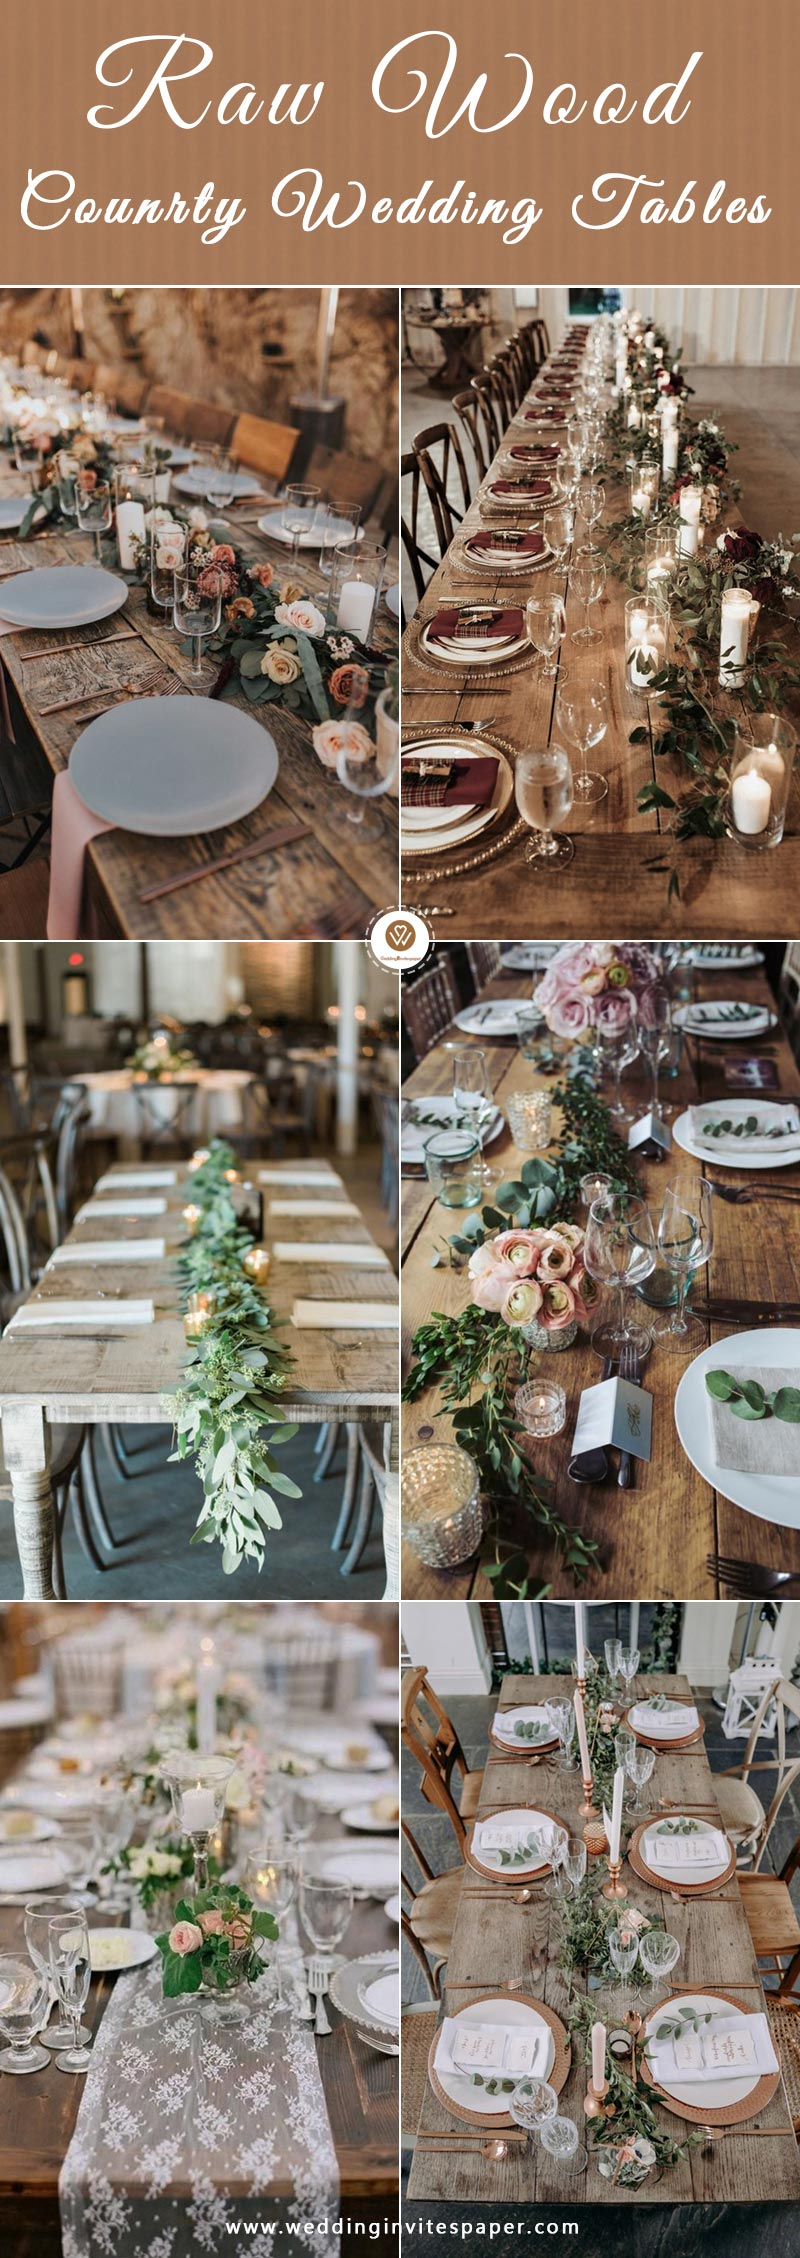 Raw-Wood-Counrty-Wedding-Tables.jpg